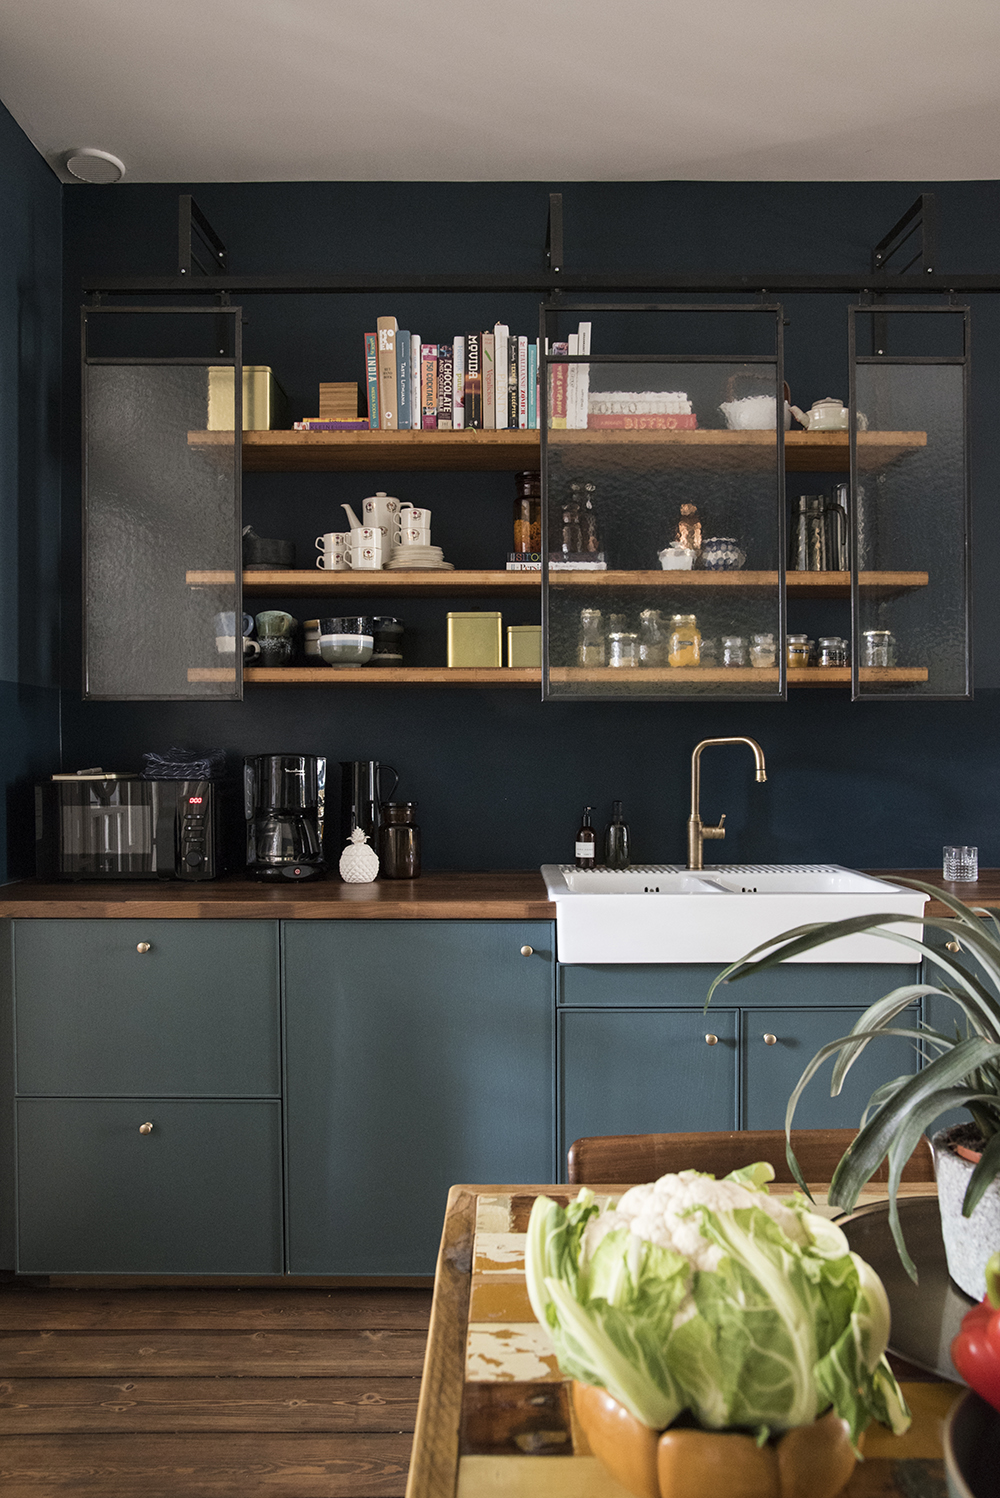 Moody kitchen in blue hues // Farrow & Ball Hague Blue and Inchyra Blue